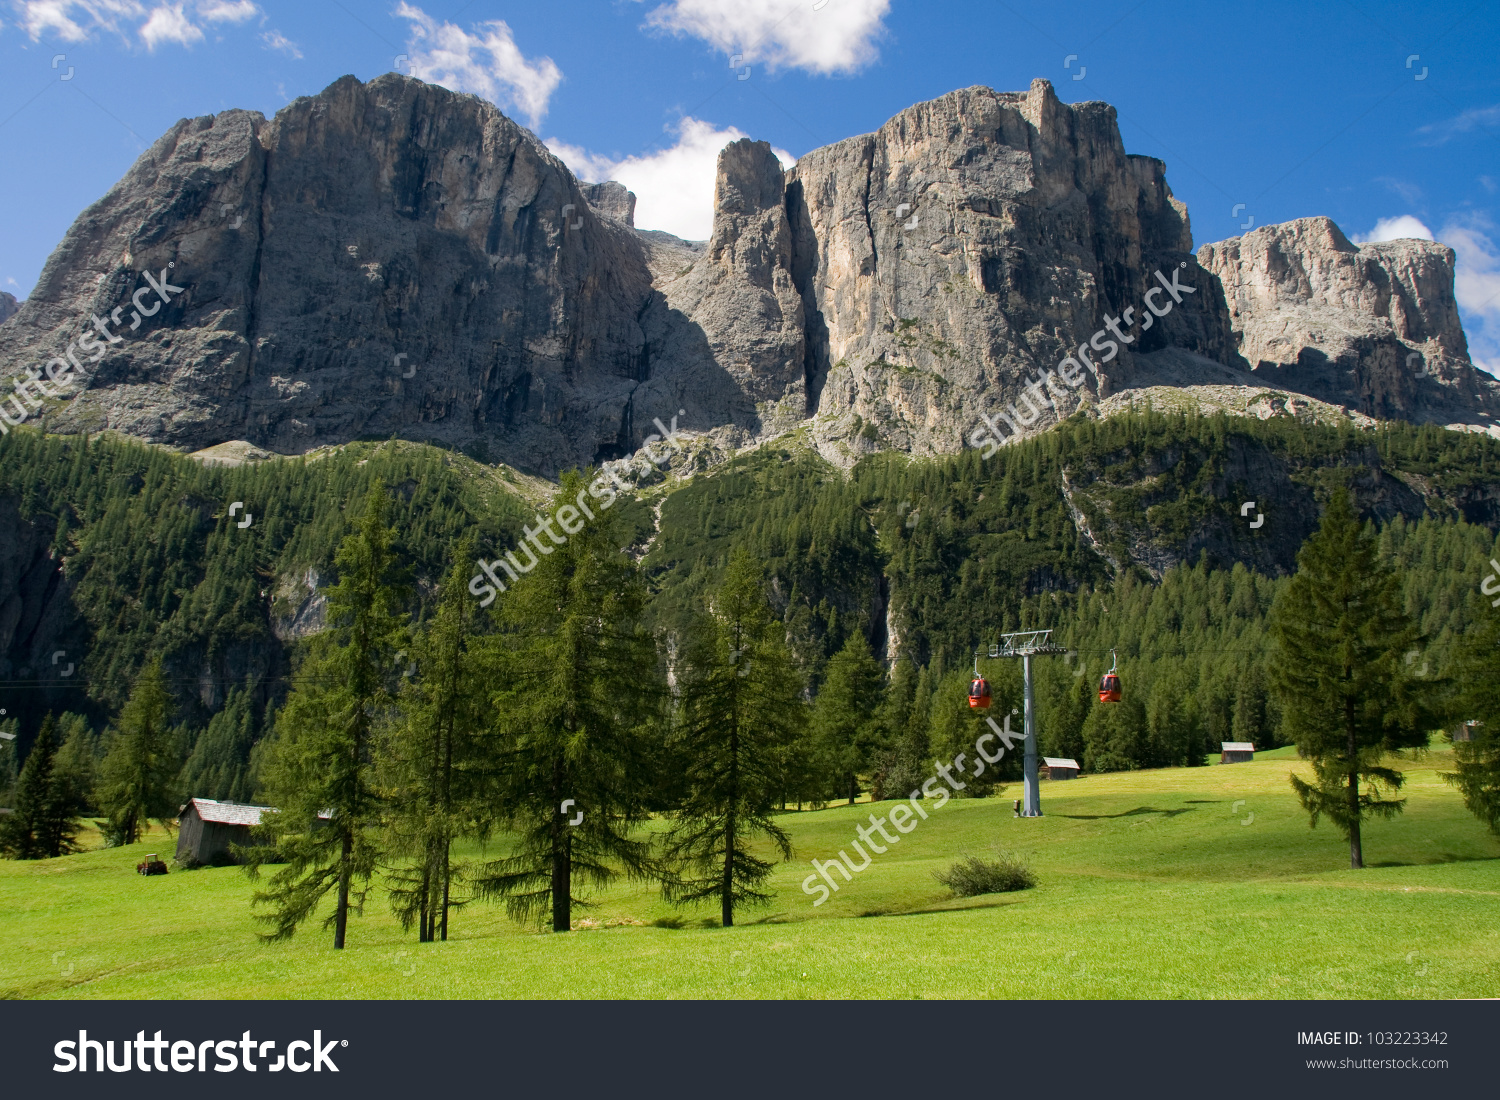 The Sella Group, A Plateau Shaped Massif In The Dolomites, Italy.